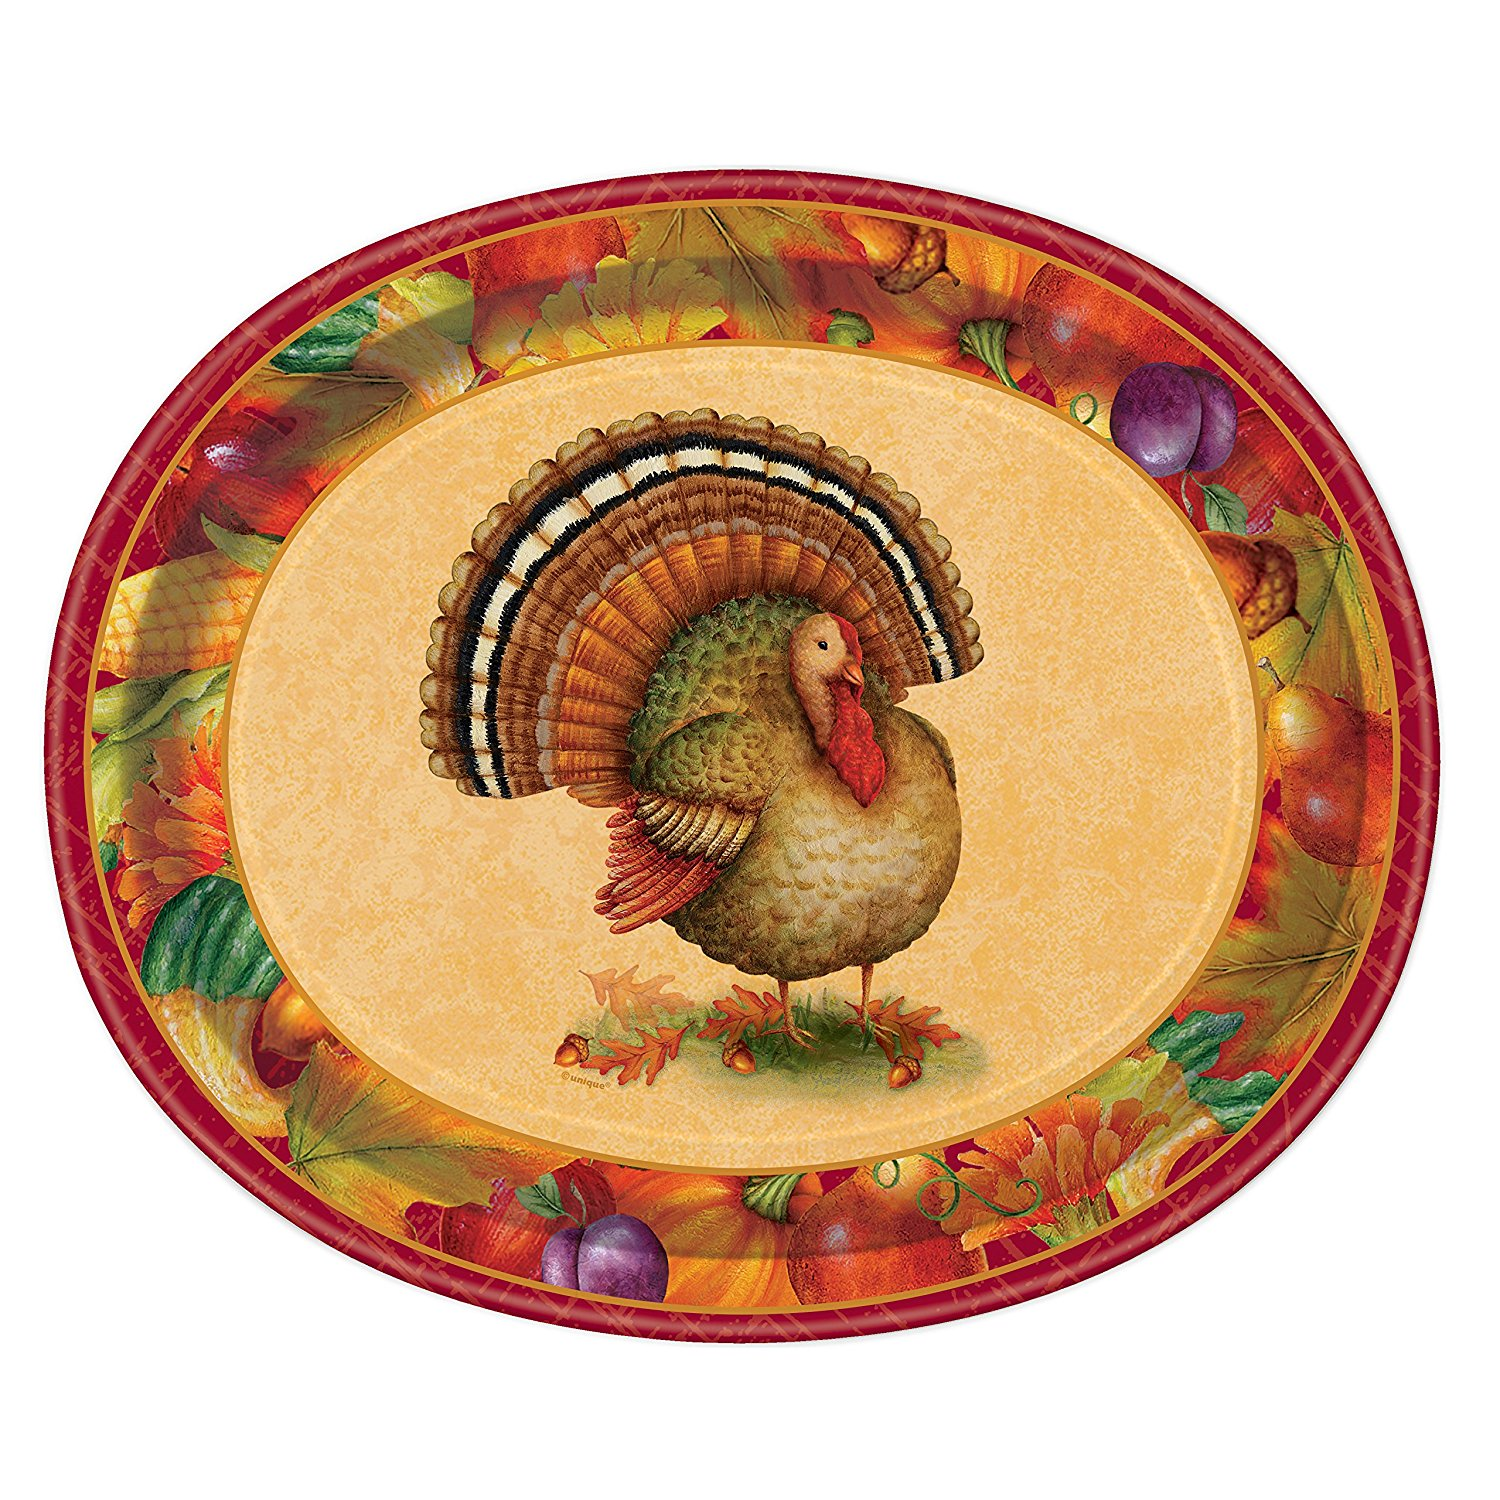 ... Festive Turkey Thanksgiving Oval Paper Plates 8ct  sc 1 st  Alibaba & Cheap Oval Paper Plates find Oval Paper Plates deals on line at ...